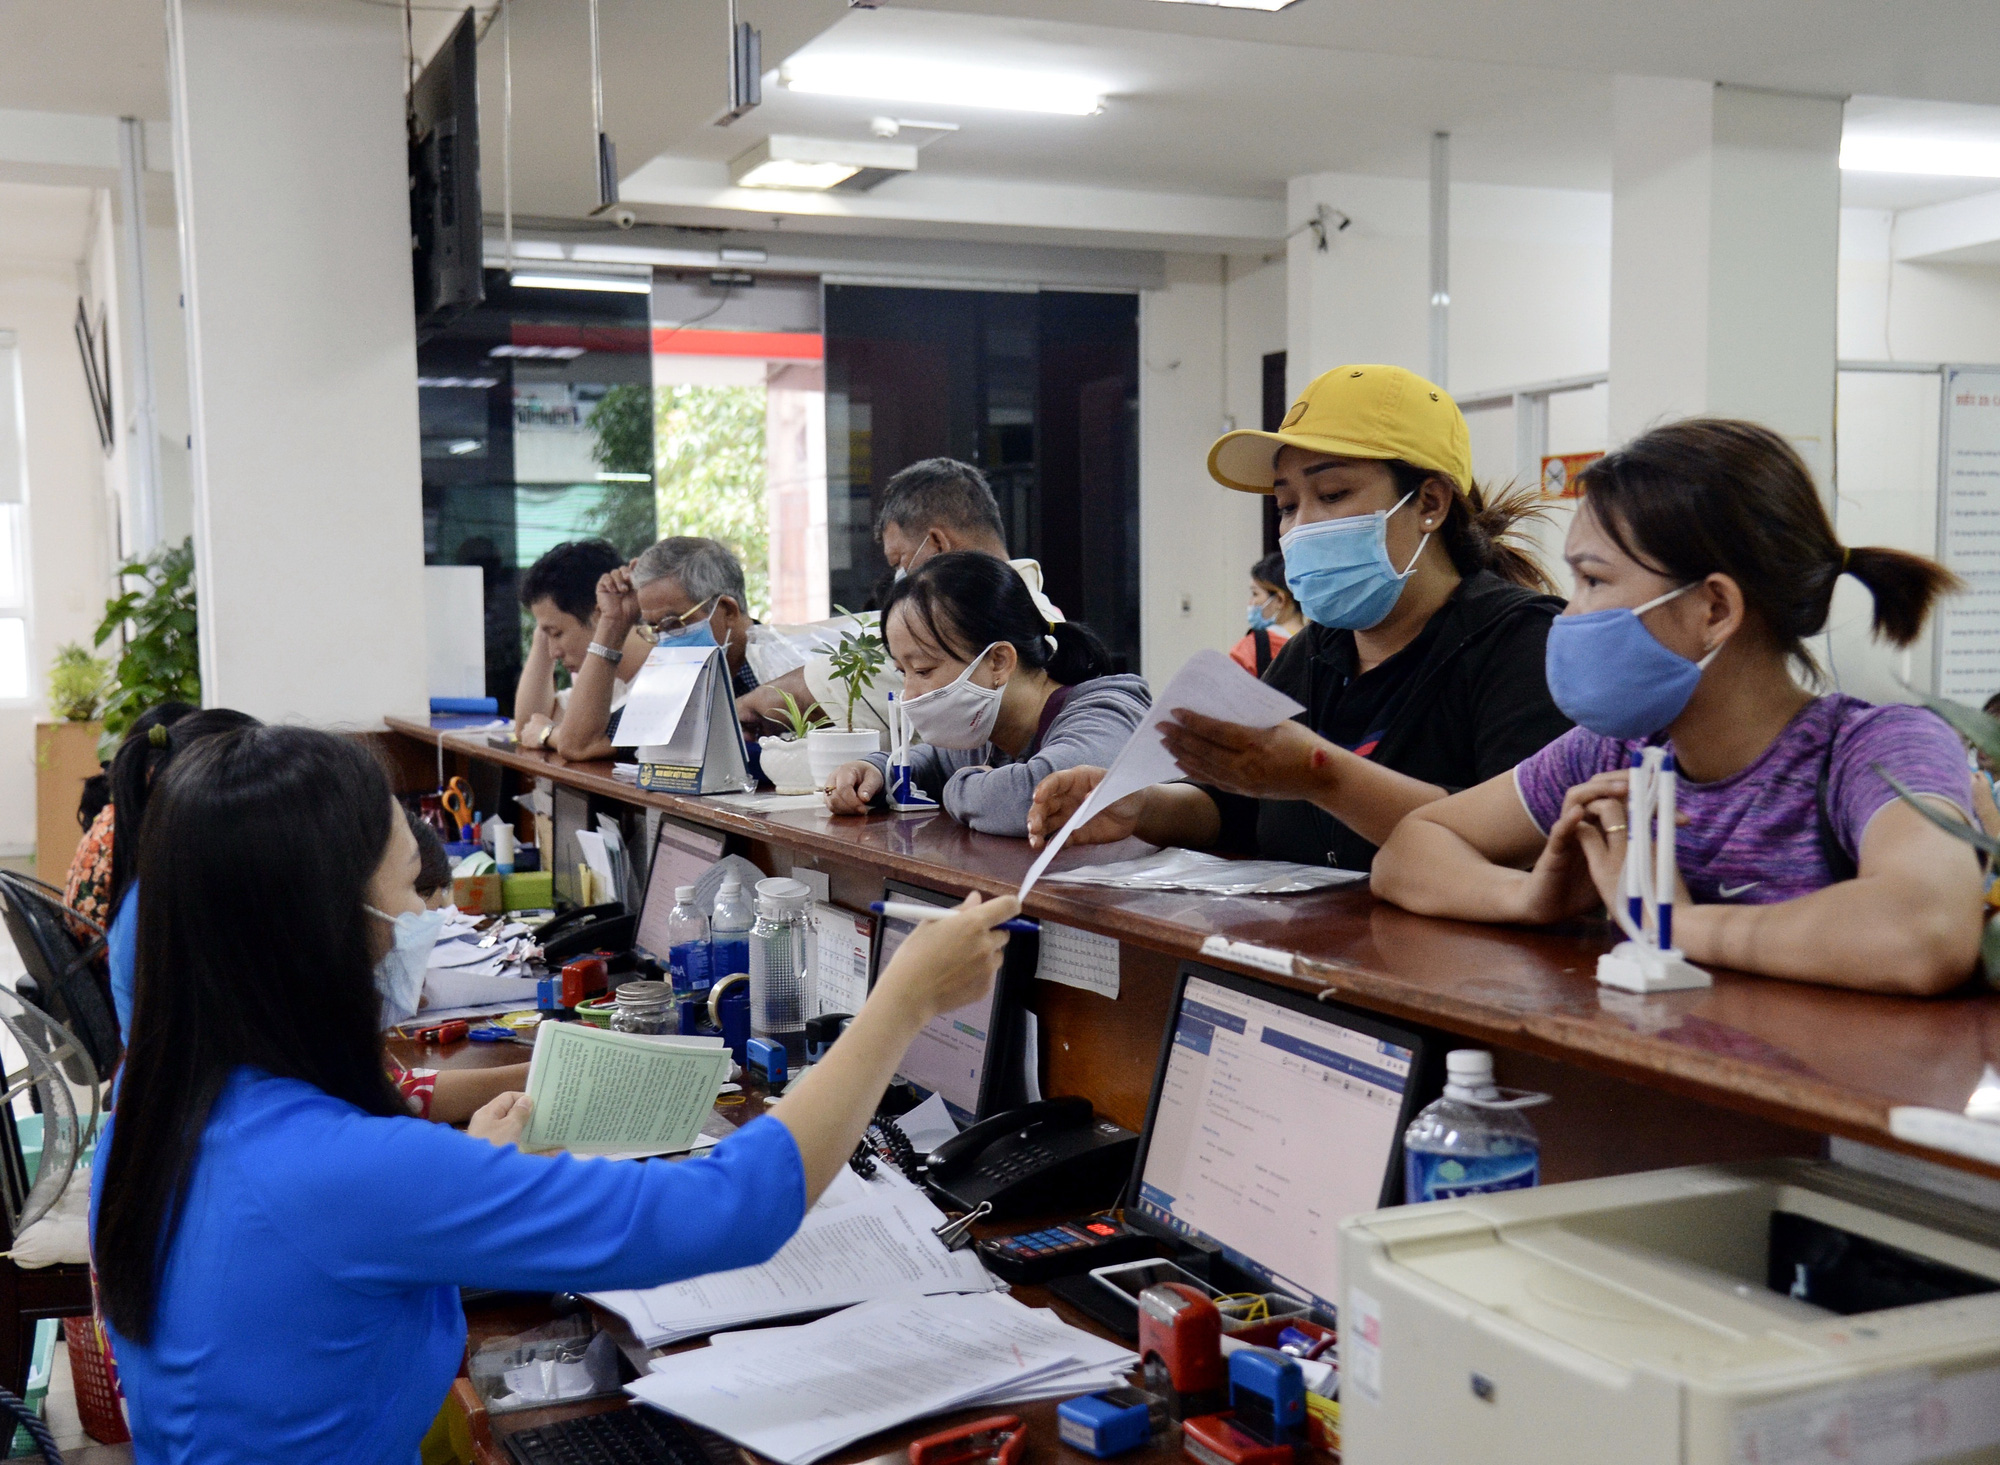 Up to 500,000 people may lose jobs to COVID-19 in Ho Chi Minh City